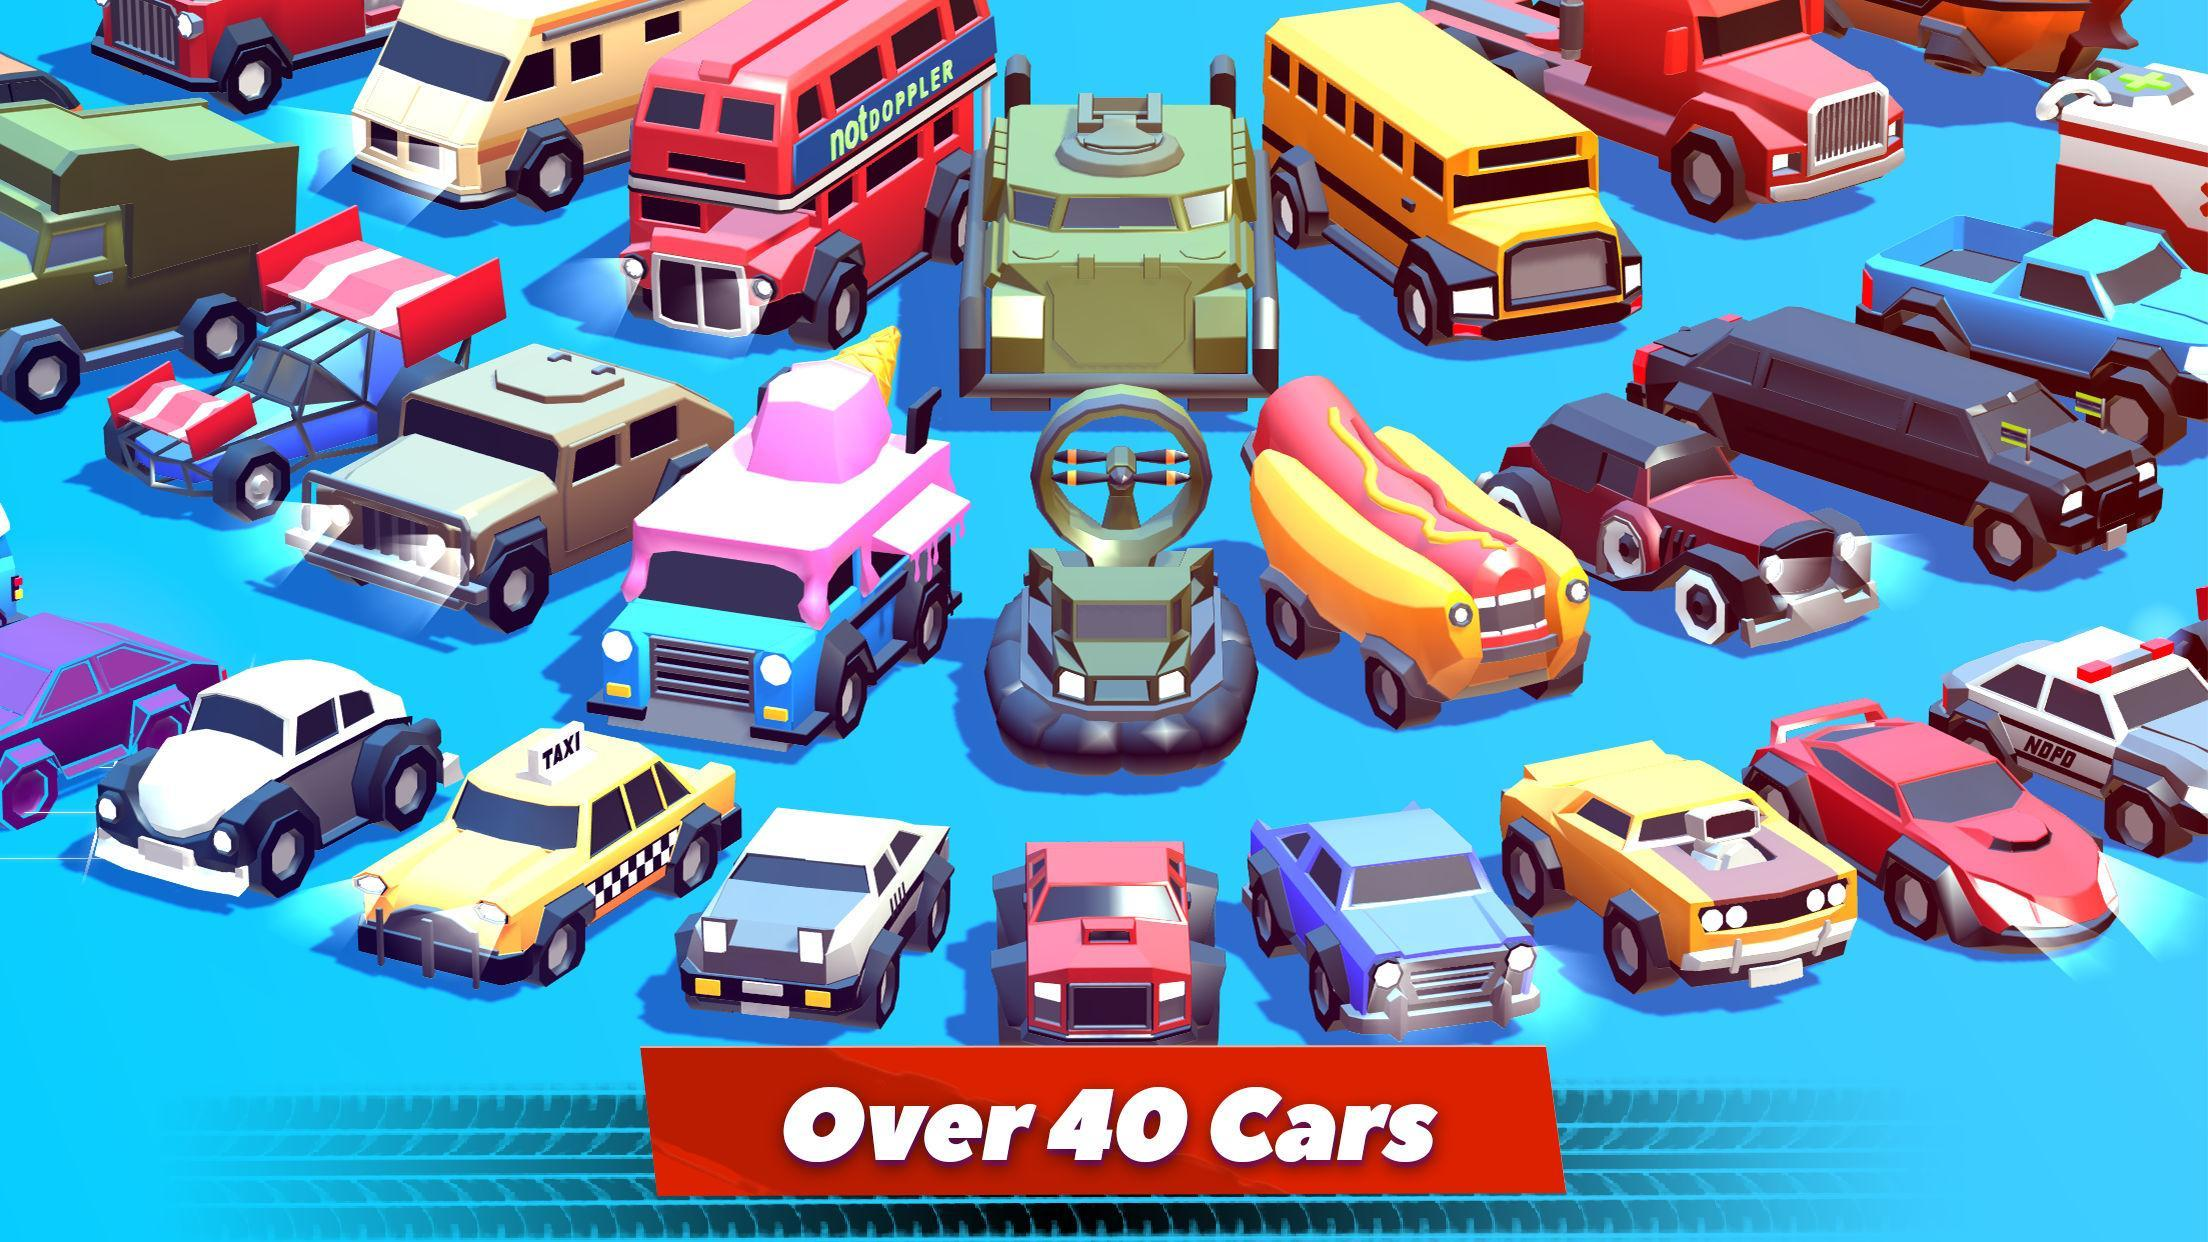 Crash of Cars Mod Apk (Unlimited Money/Gems/Health) Unlocked all Cars 2